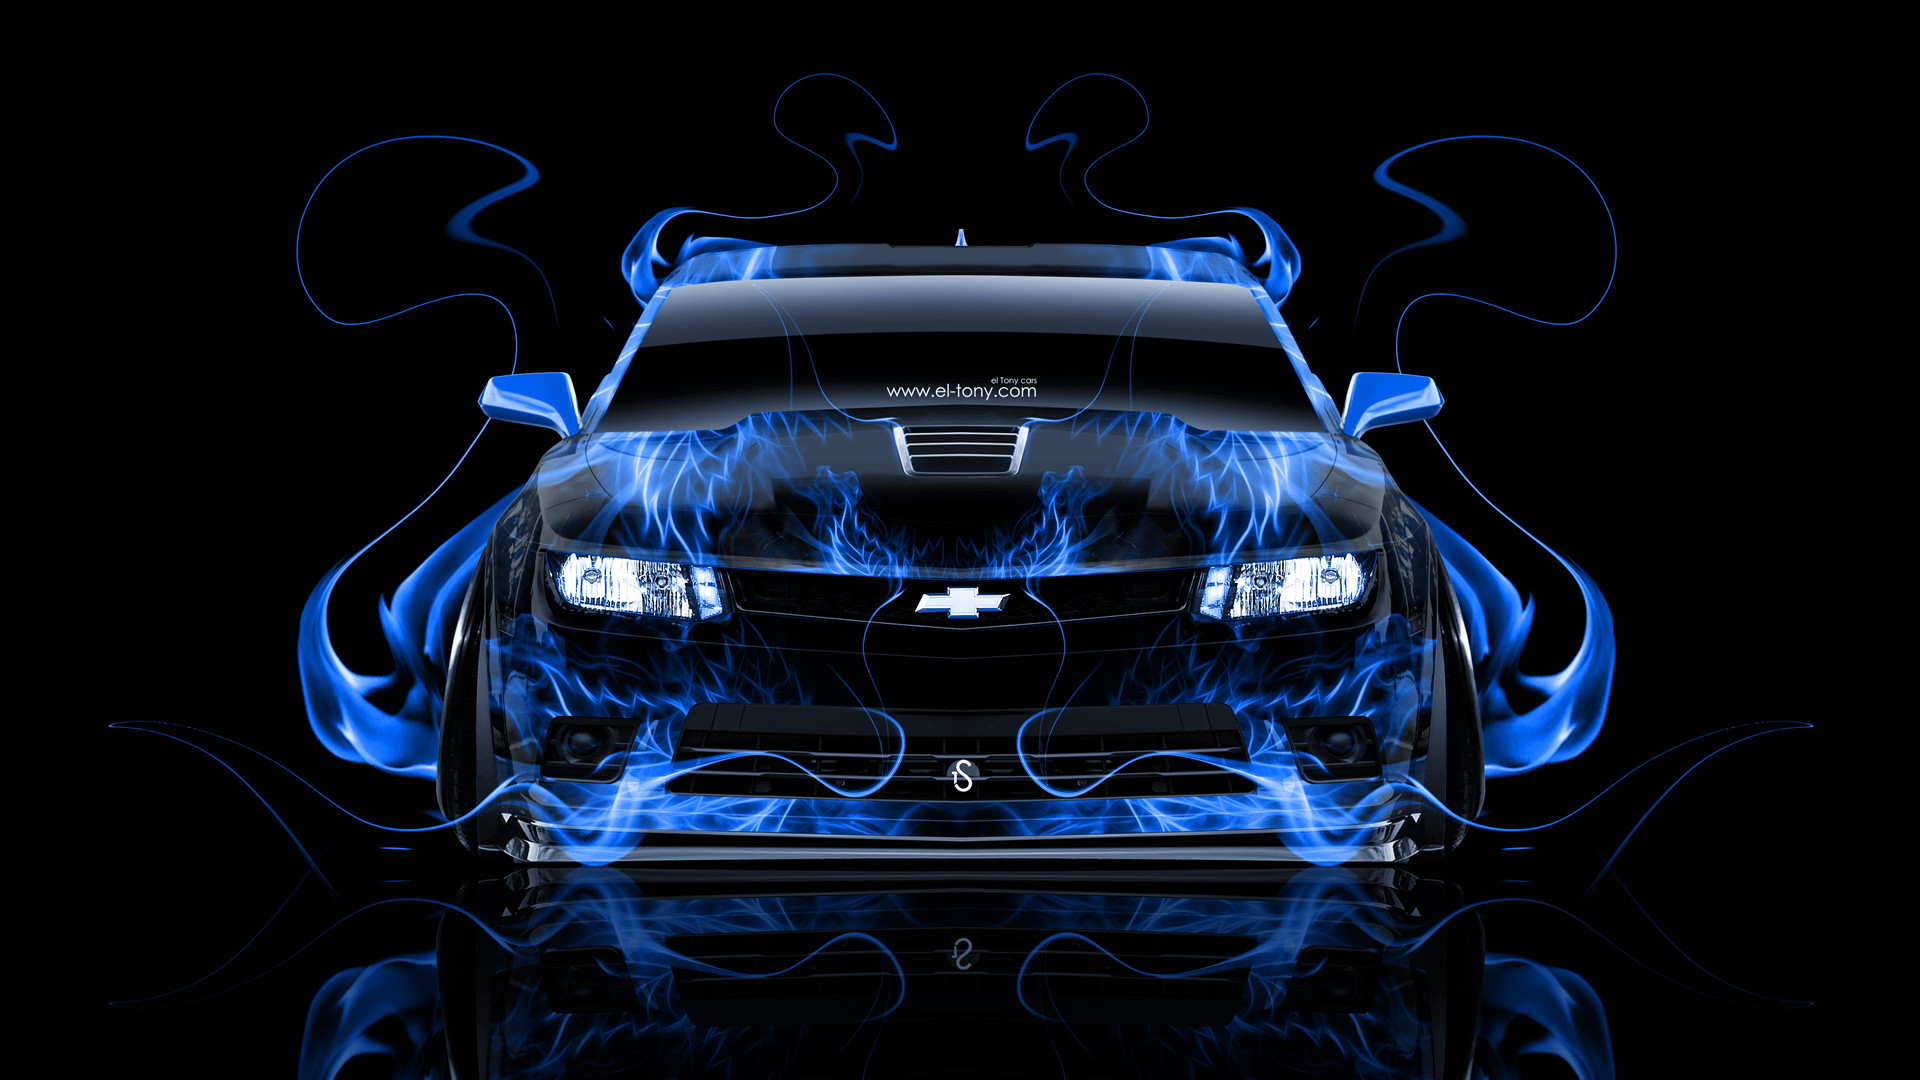 Blue And Black Chevrolet Wallpaper 6 Hd Wallpaper. Blue And Black Chevrolet  Wallpaper 6 Hd Wallpaper